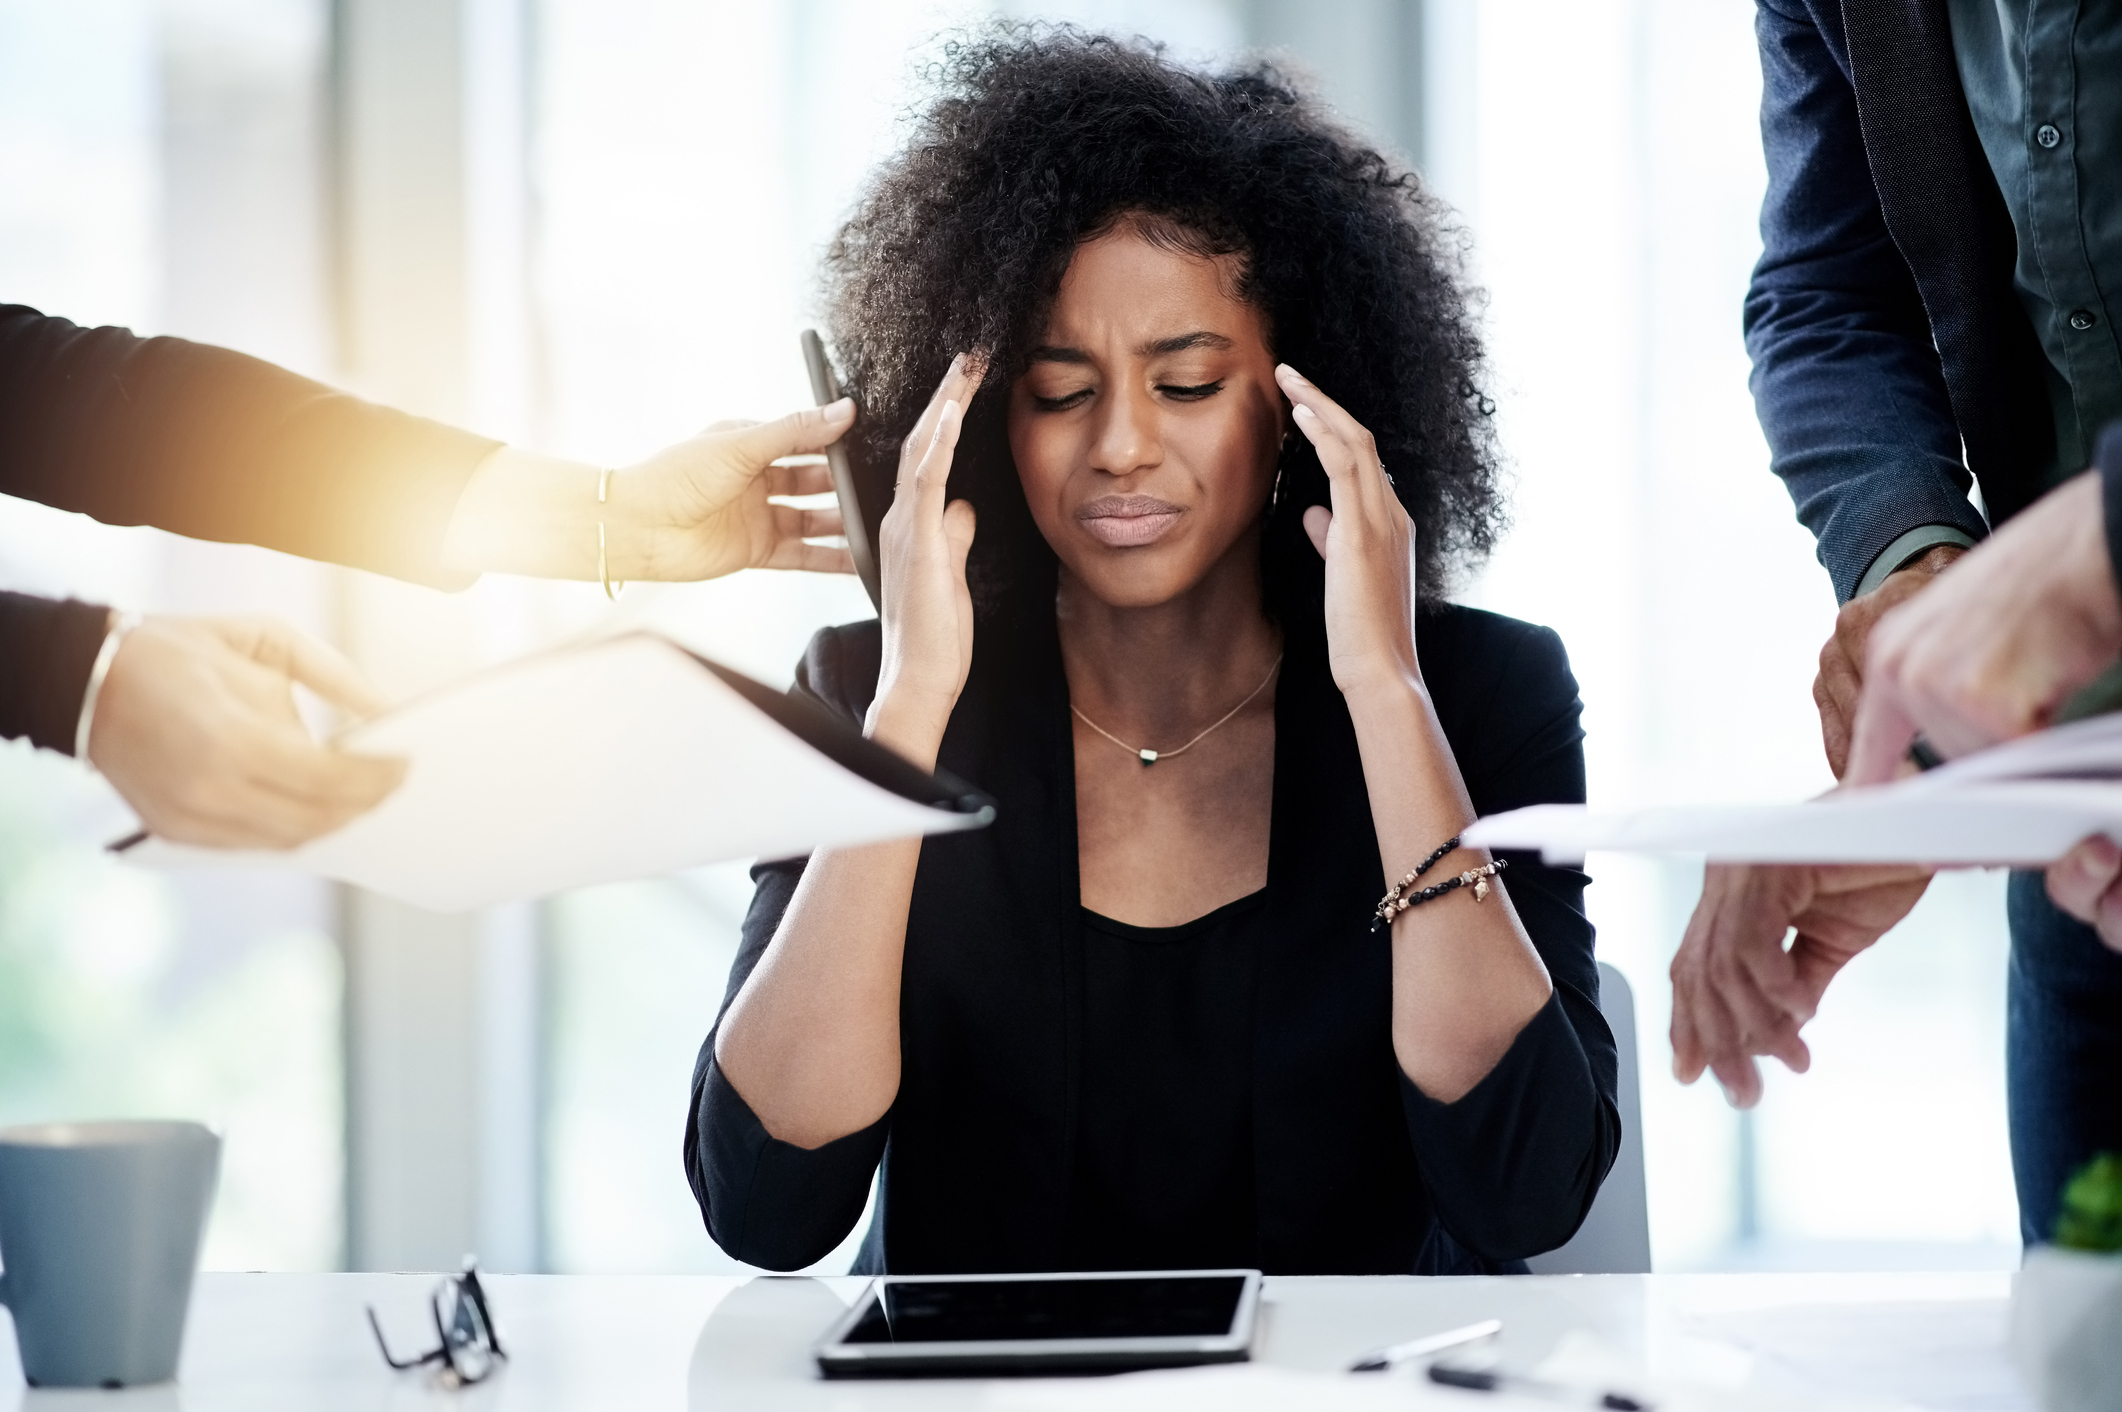 stock photo of woman holding head in pain while other hands reach in handing her a phone, pen, and paper